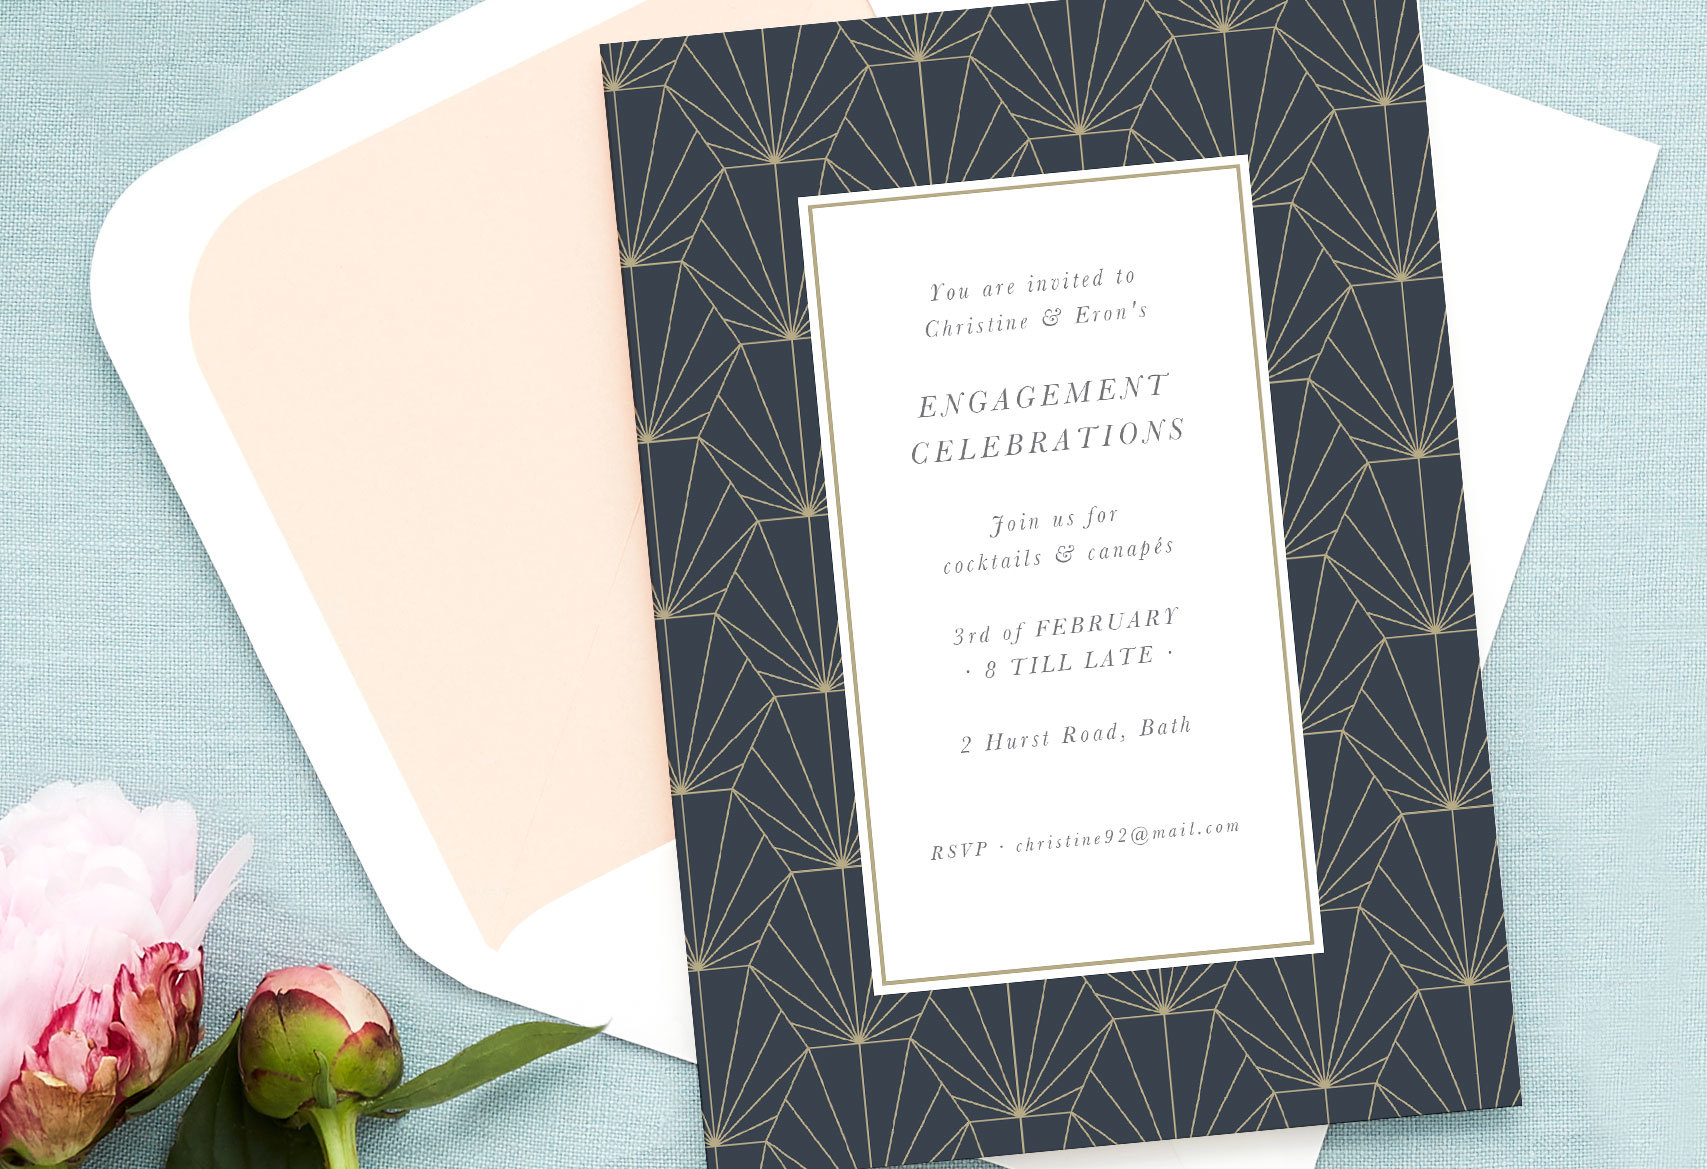 engagement celebration invitation wording